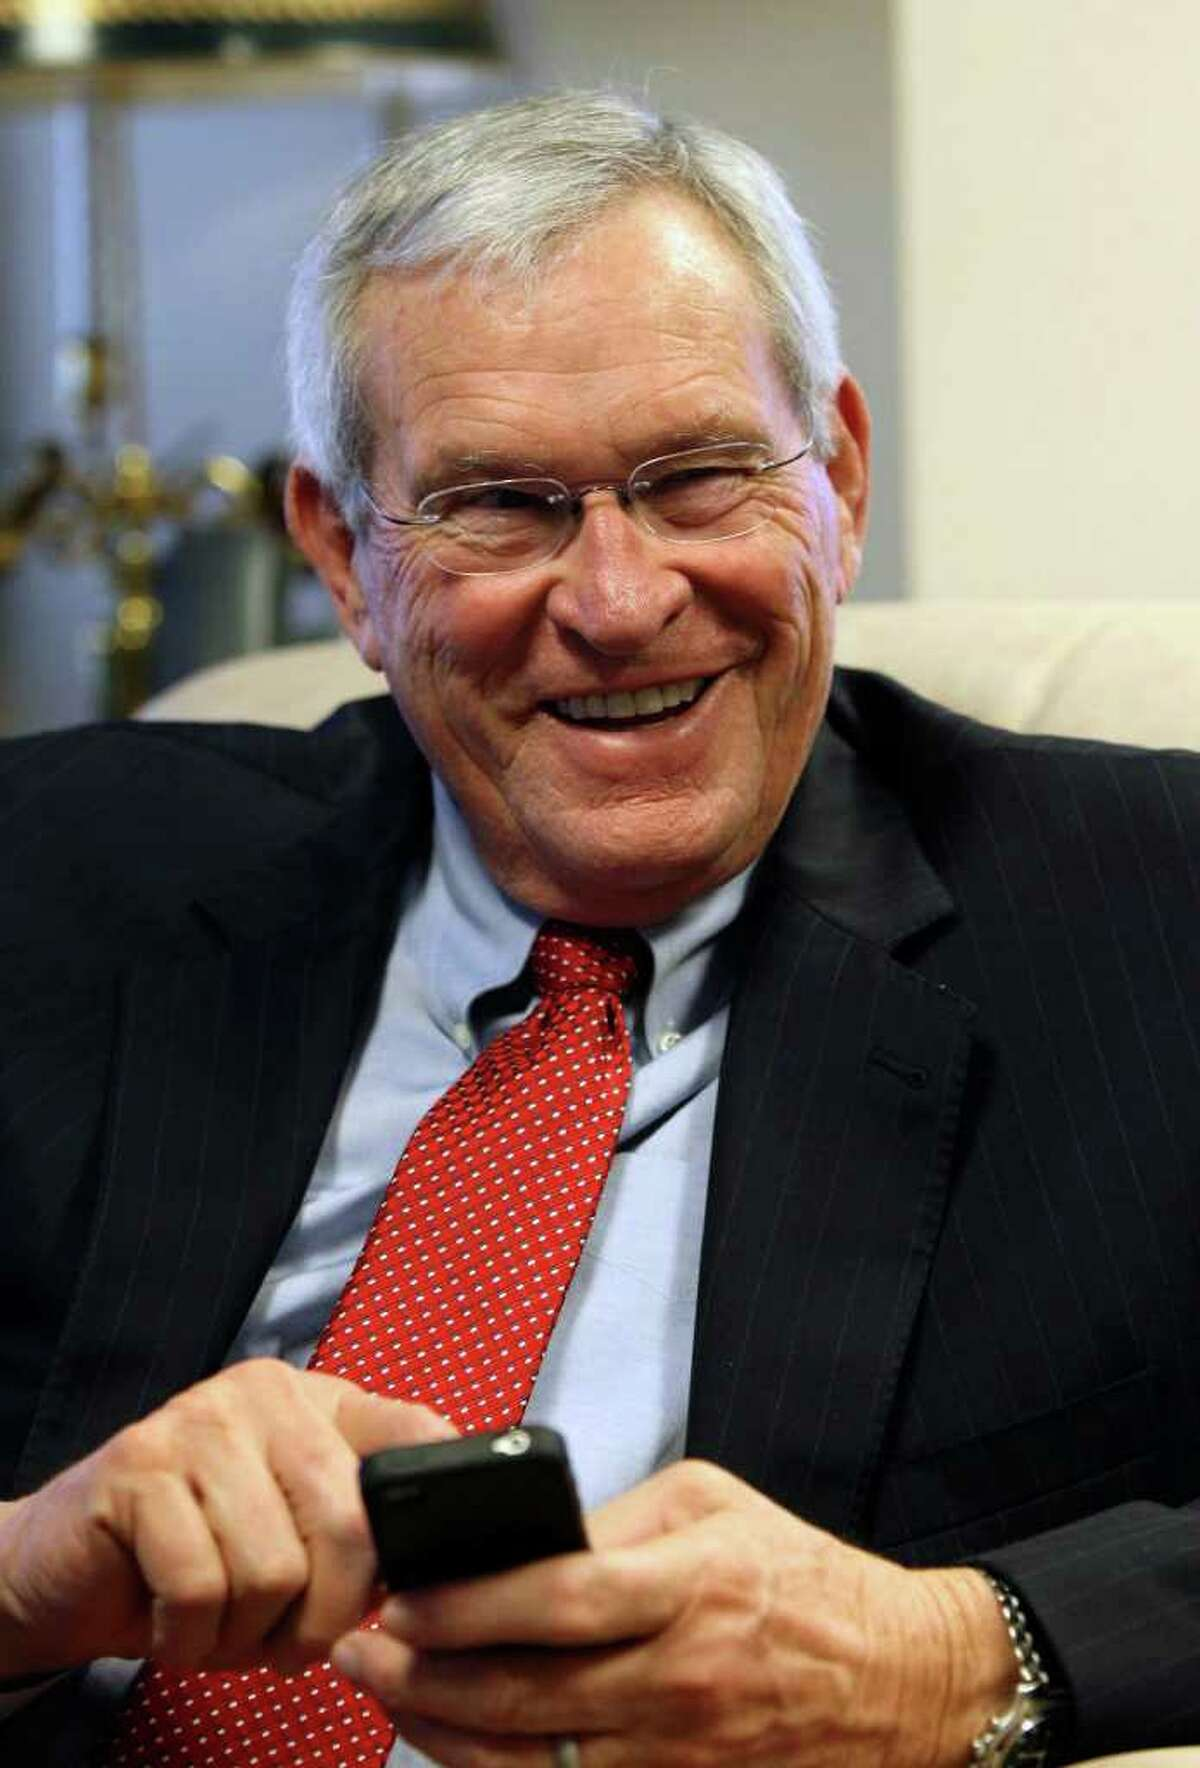 Retired AT&T executive Edward E. Whitacre Jr. was selected to lead General Motors in 2009.